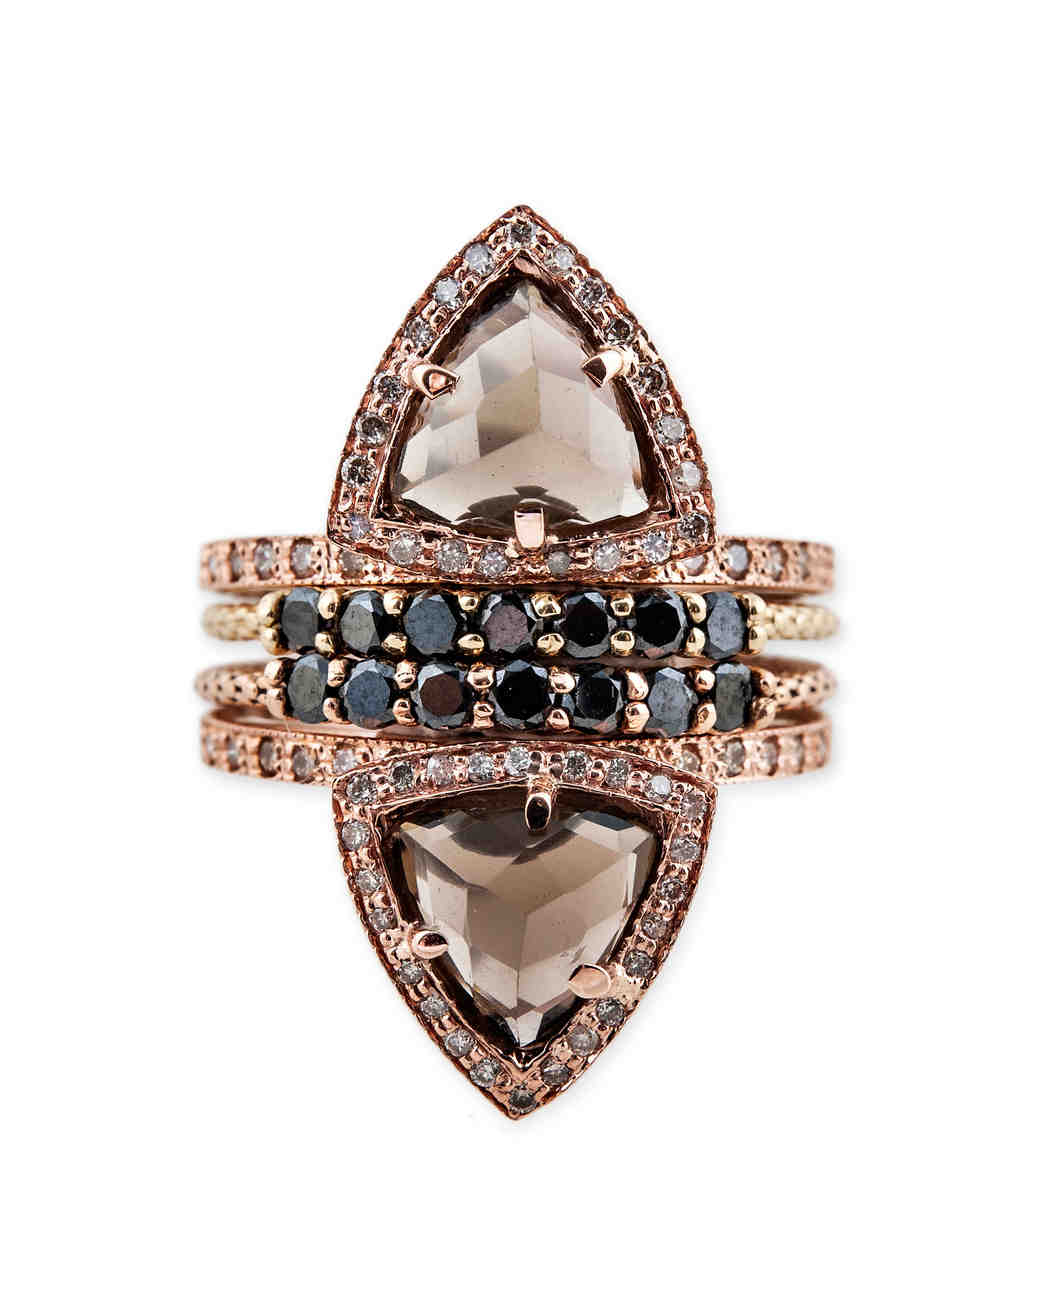 colored-engagement-rings-jacquie-aiche-smokey-topaz-pyramid-0316.jpg